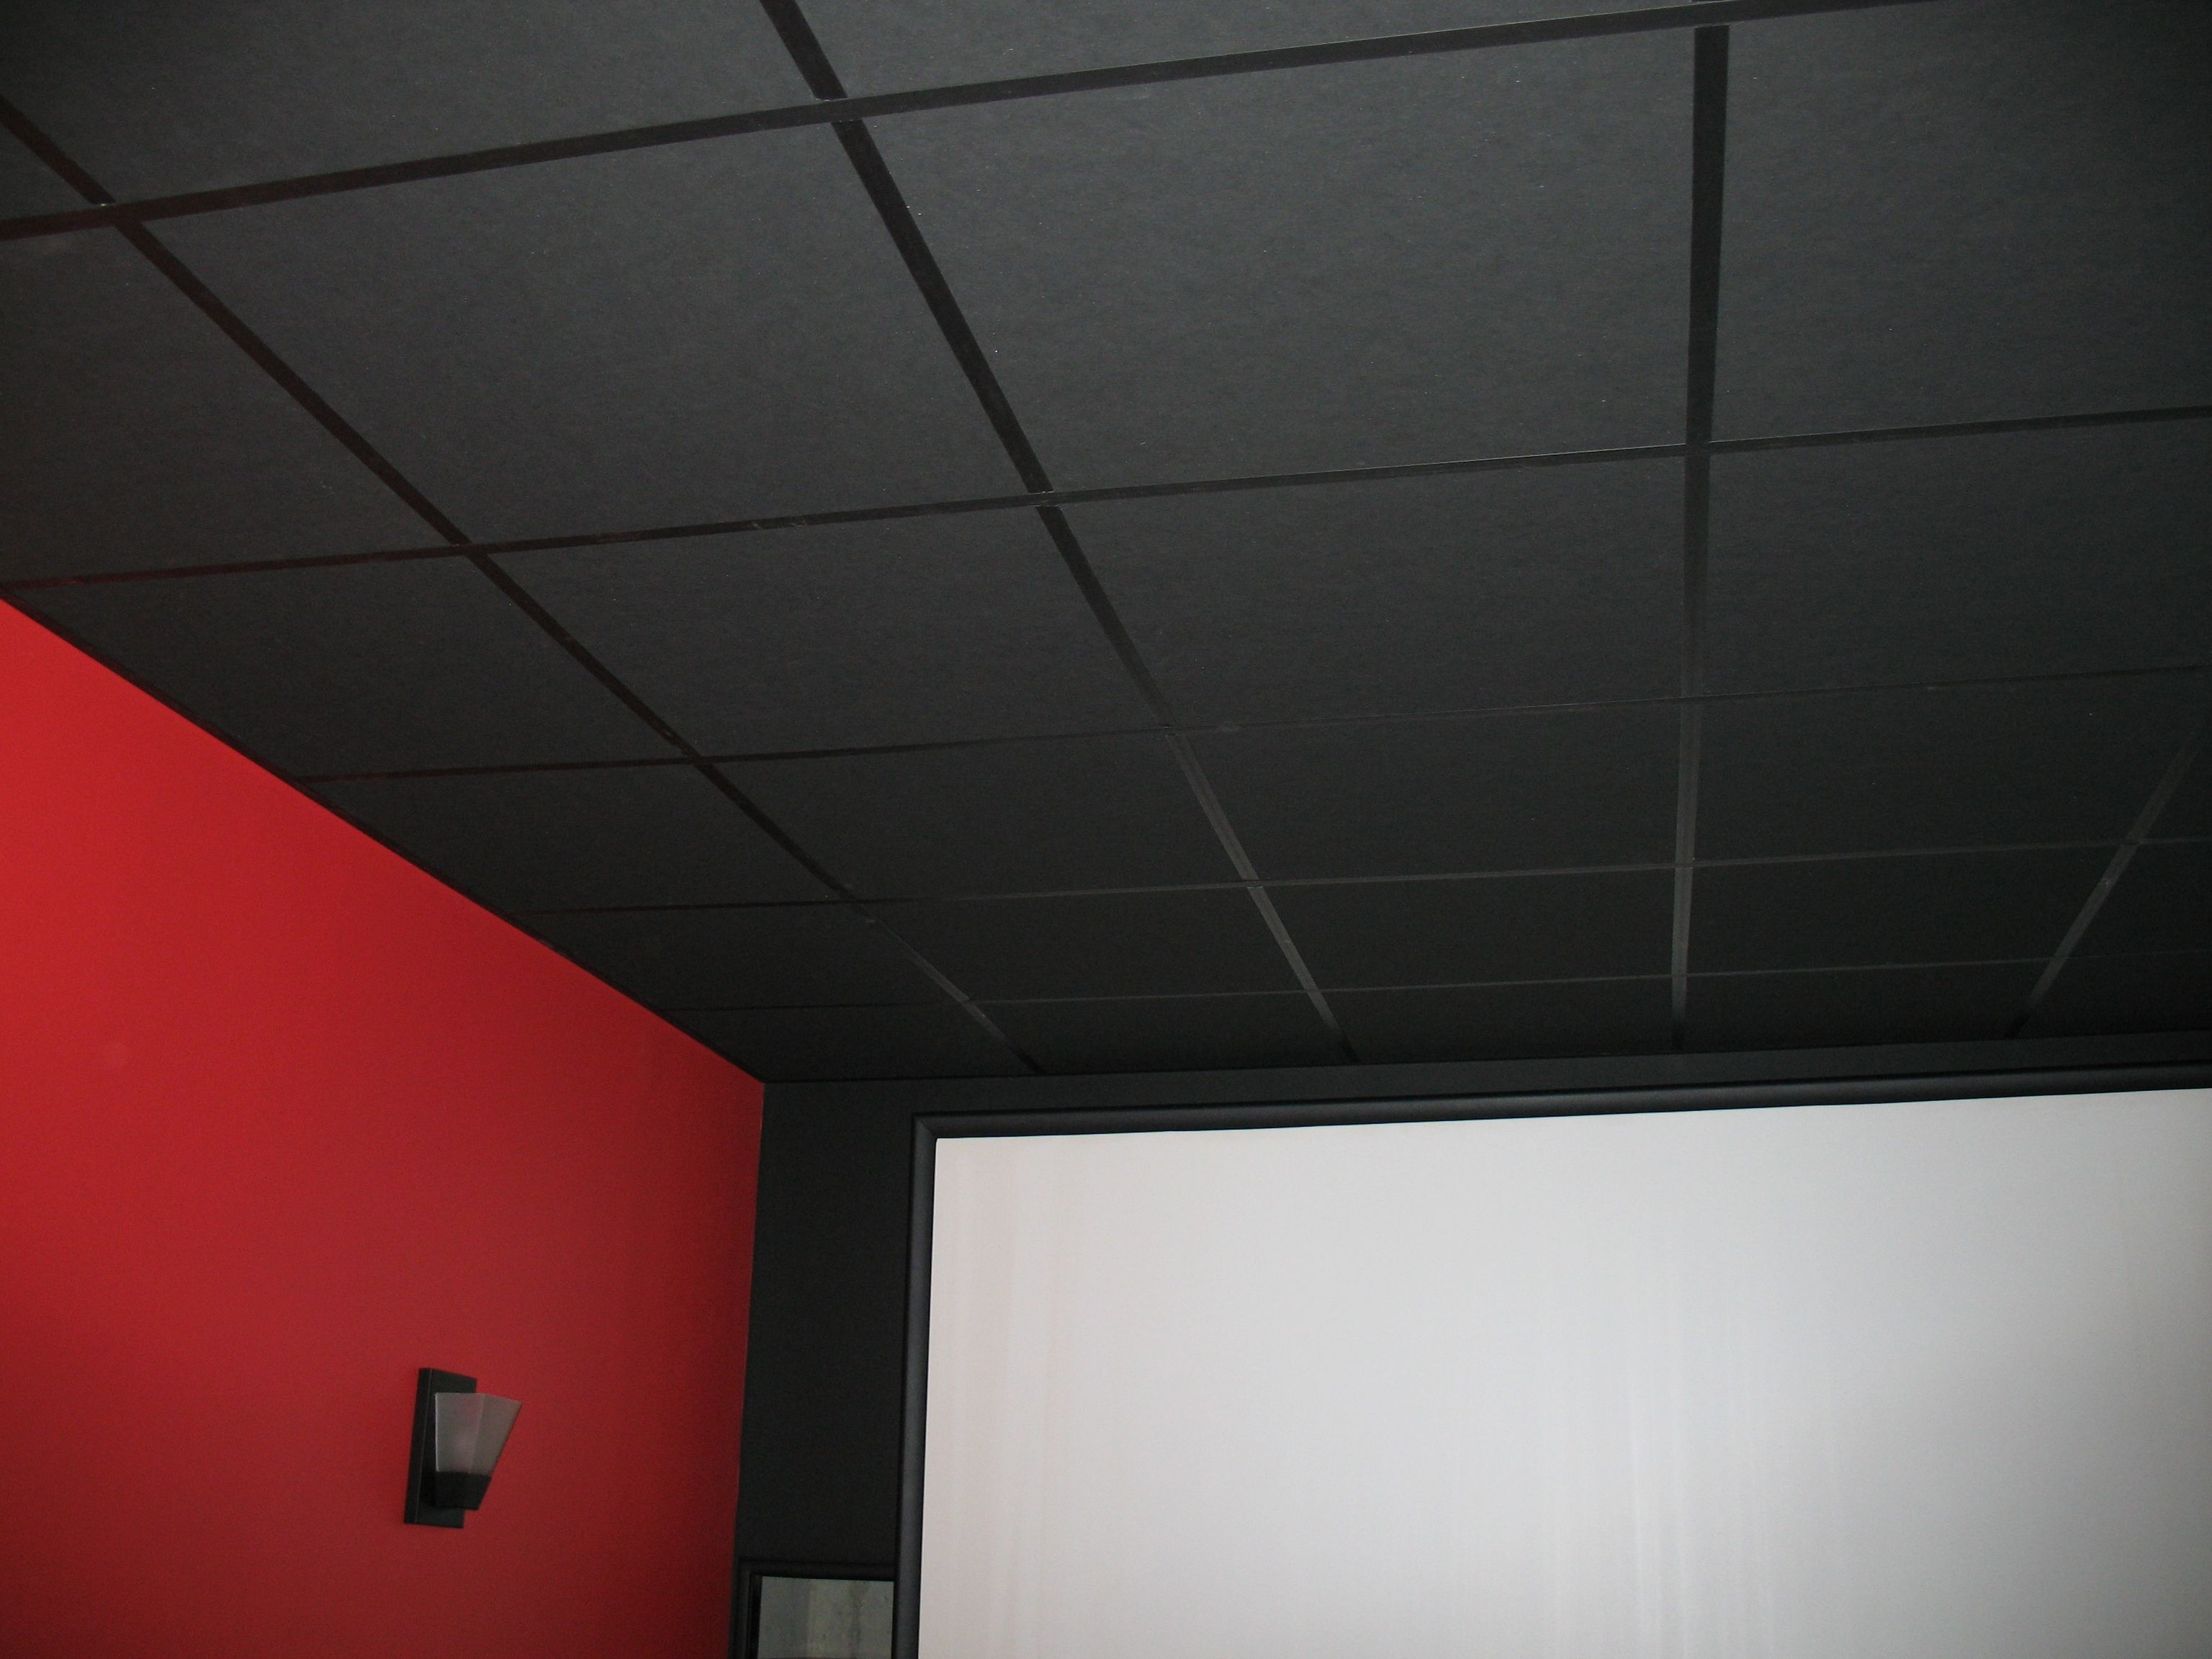 Soundproof Suspended Ceiling Tiles Dropped Ceiling Drop Ceiling Tiles Black Ceiling Tiles